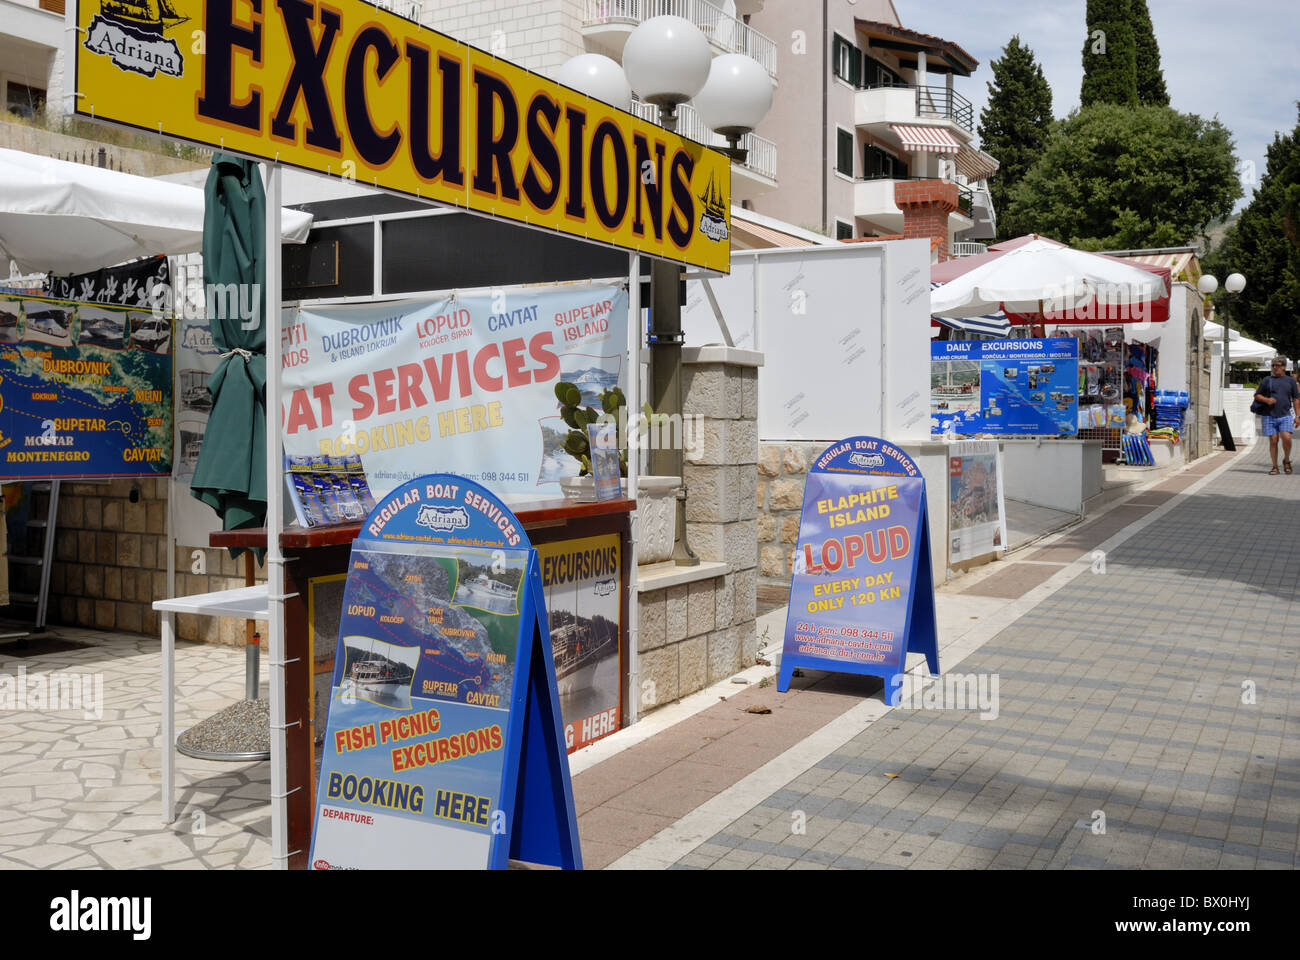 A fine view to travel agency offices in Setaliste Kralja Zvonimira street in Lapad area. The travel agencies sell - Stock Image